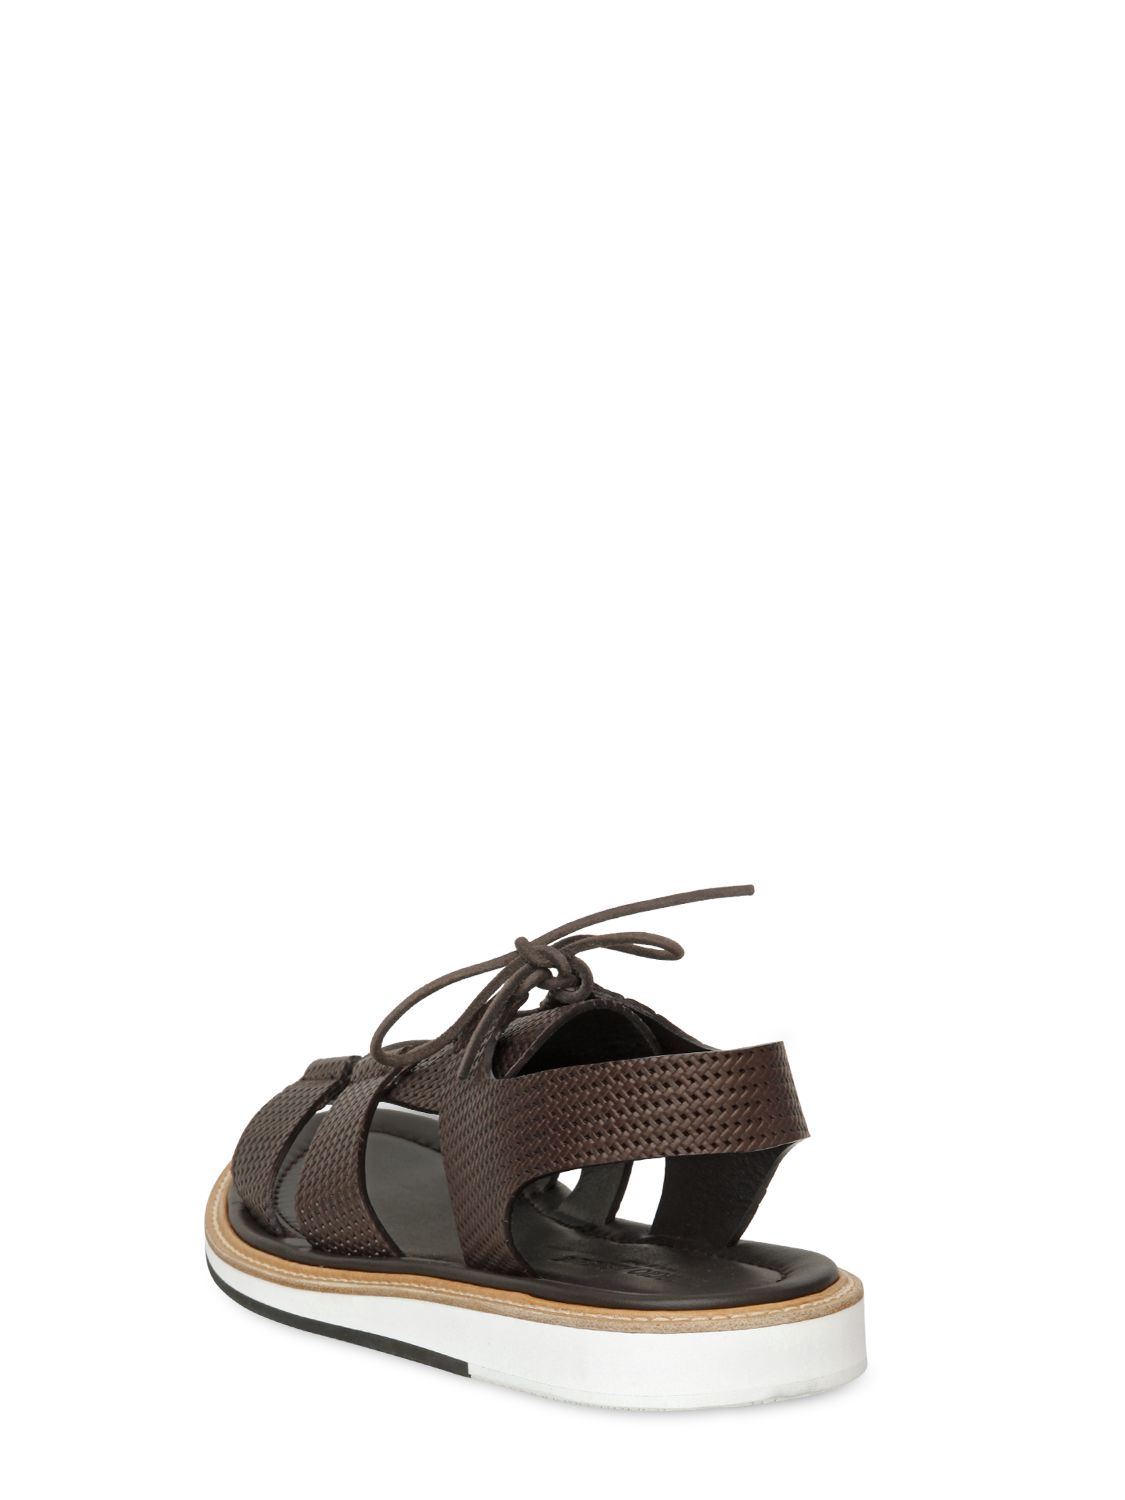 70746c482d3c57 Lyst - Giorgio Armani Woven Leather Lace-up Sandals in Brown for Men